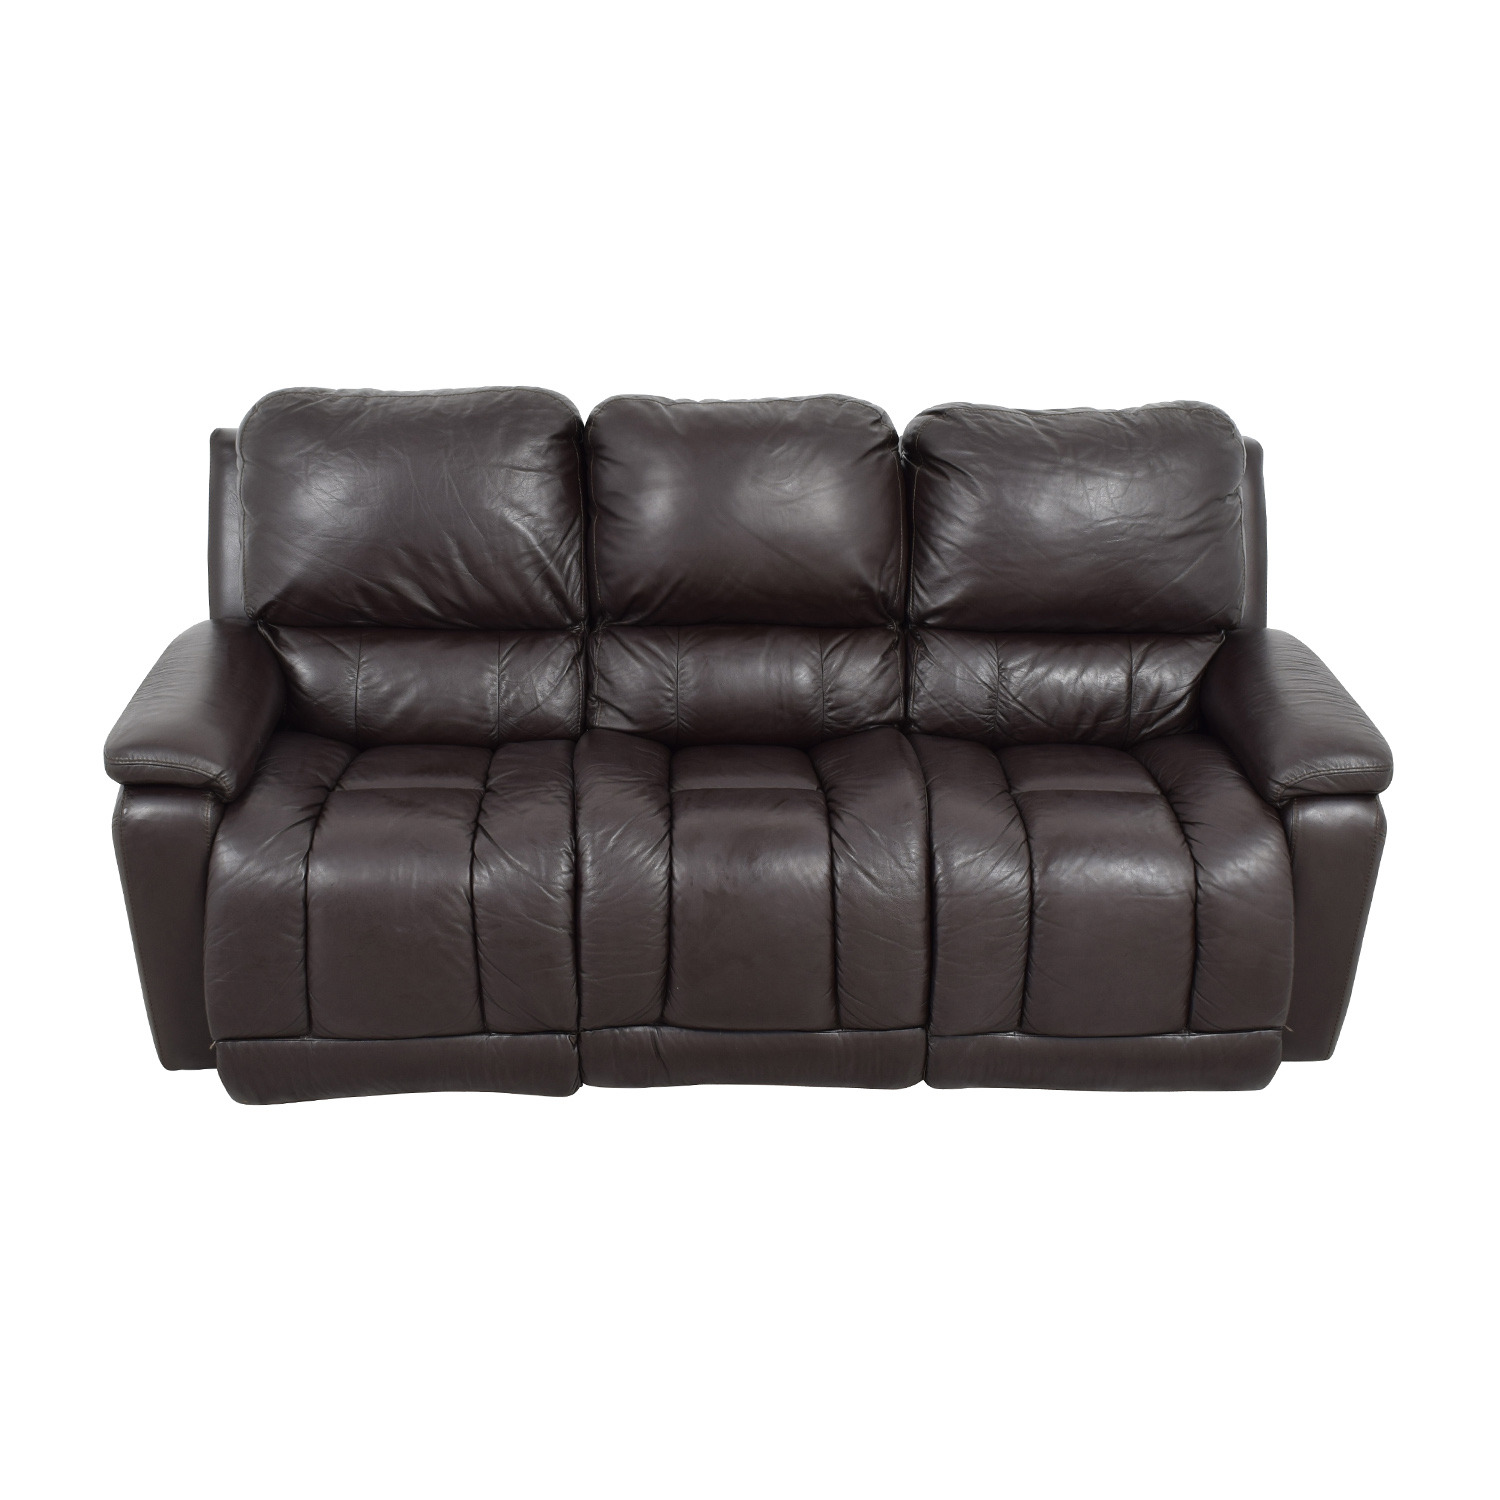 La-Z-Boy La-Z-Boy Brown Leather Reclining Sofa price